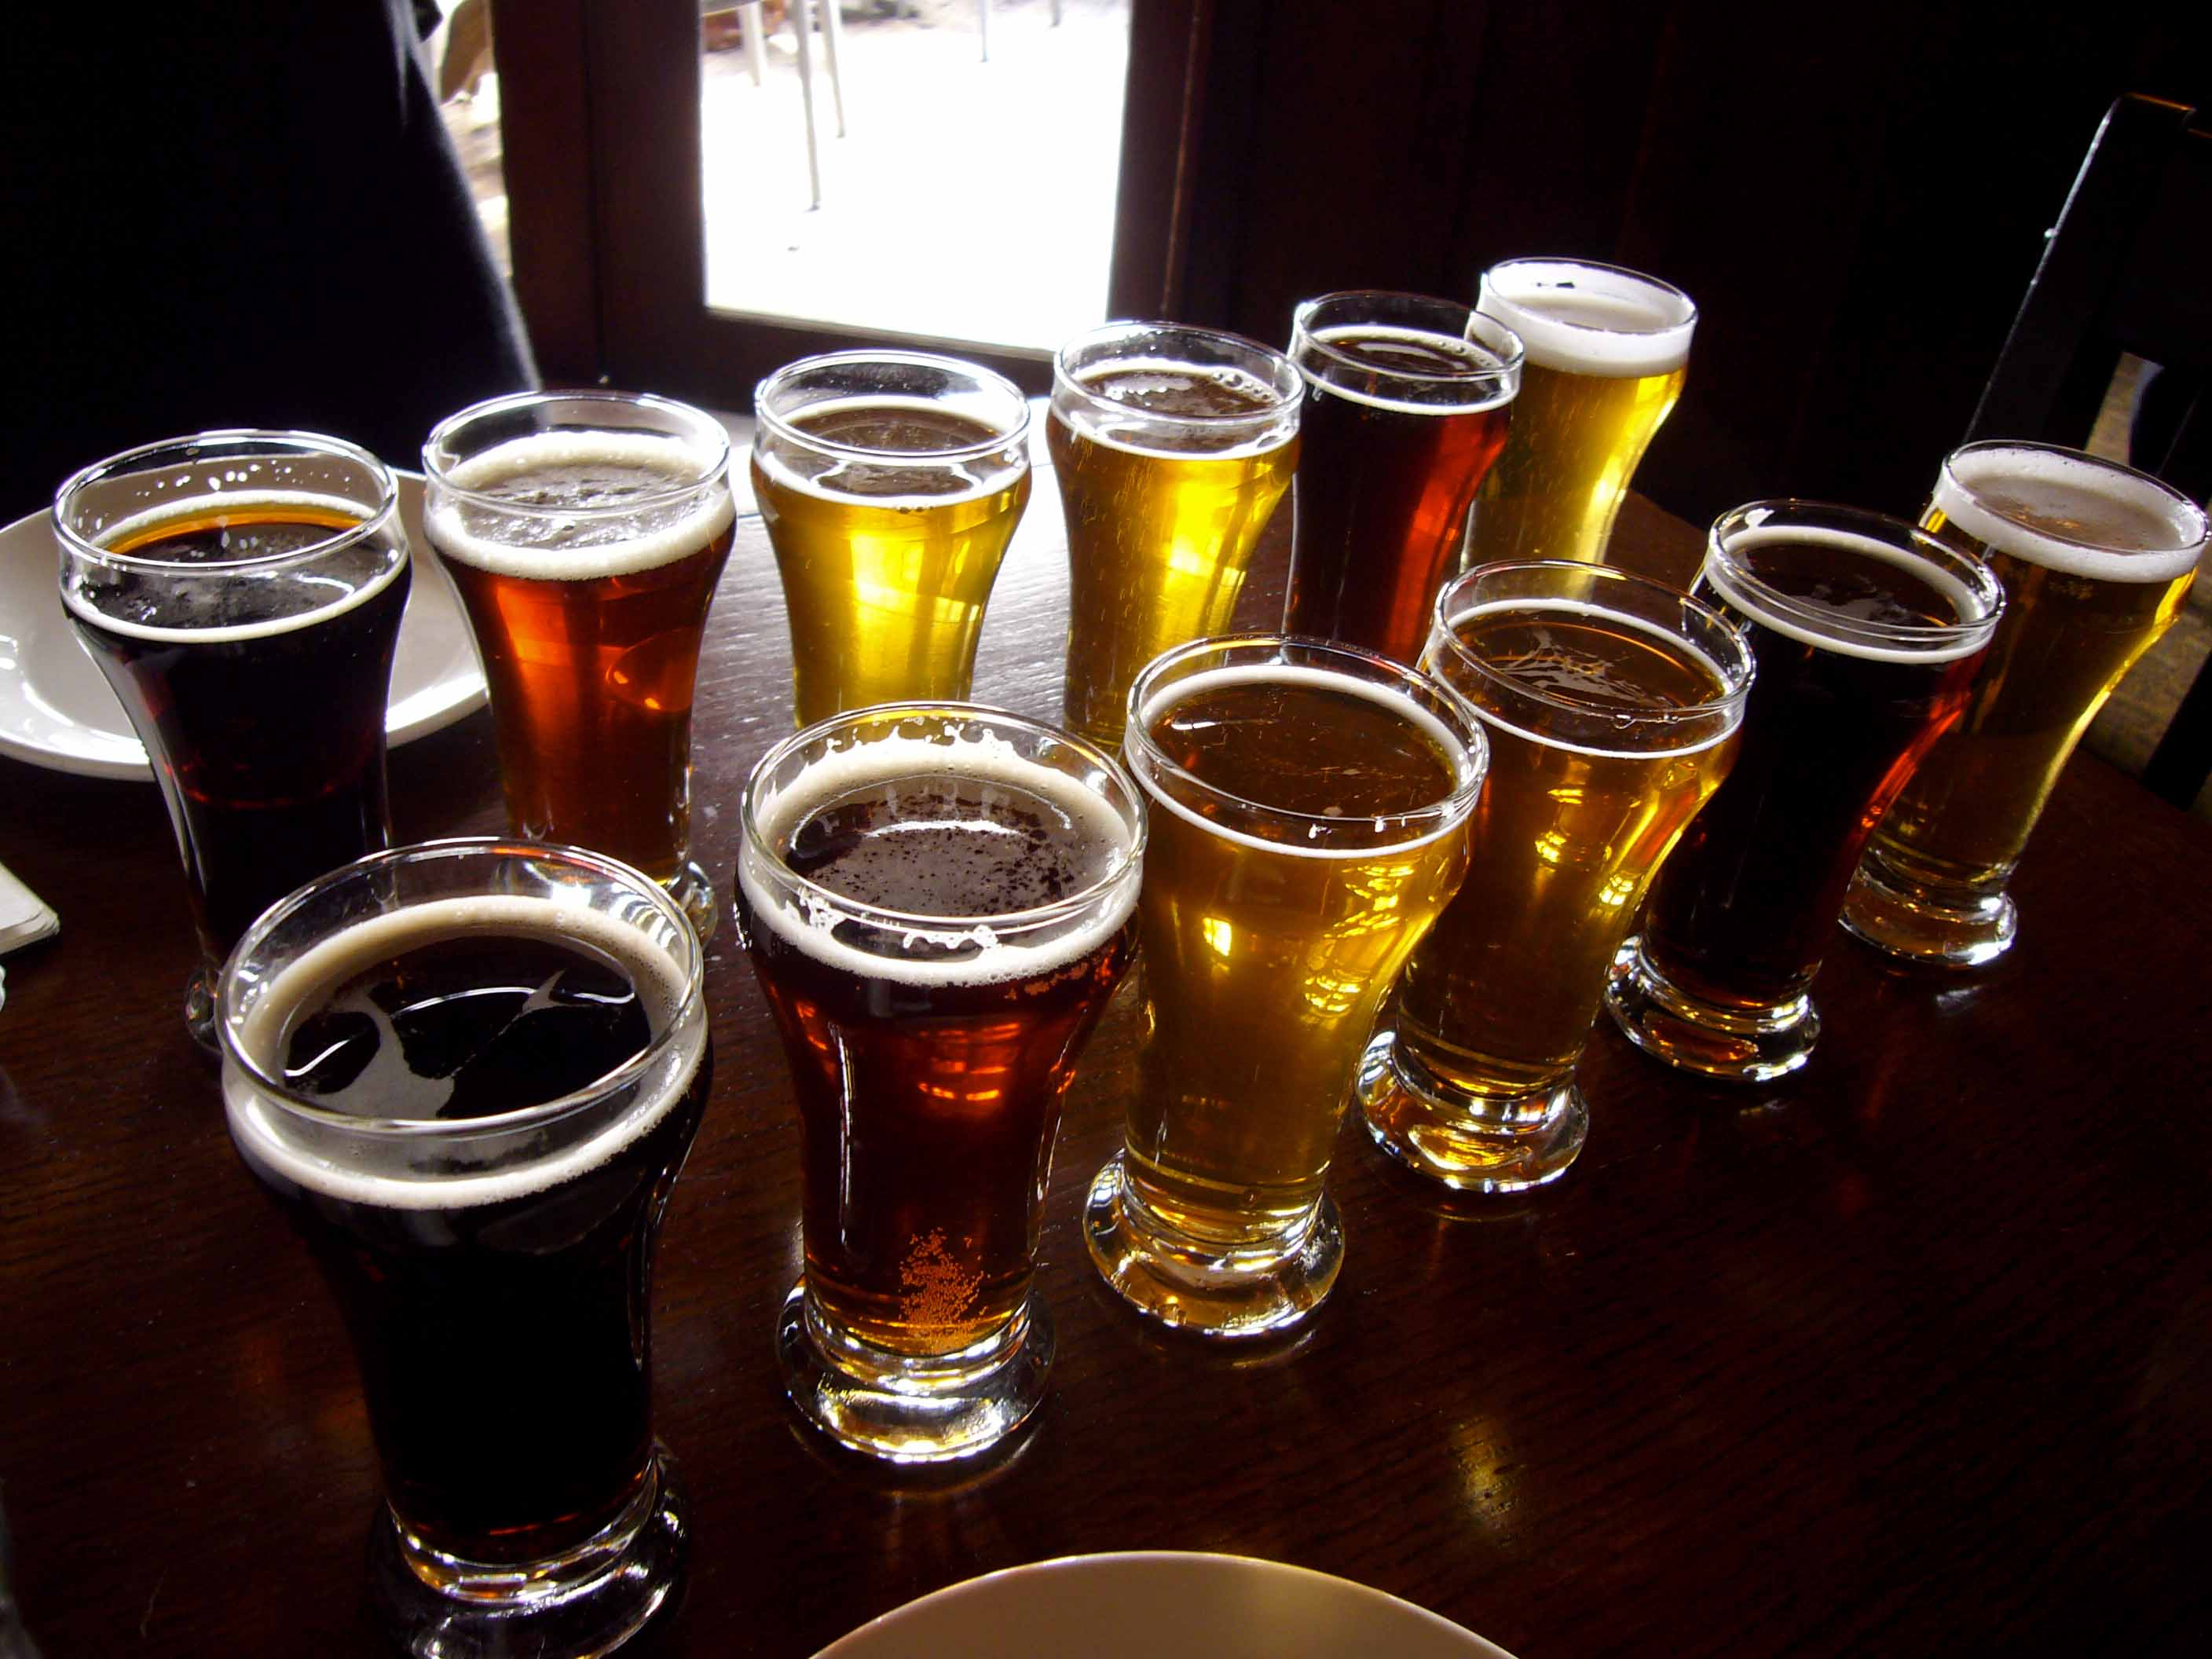 Sampling_beers_in_style_at_Spinnakers| ©Paul Joseph/ Wikicommons